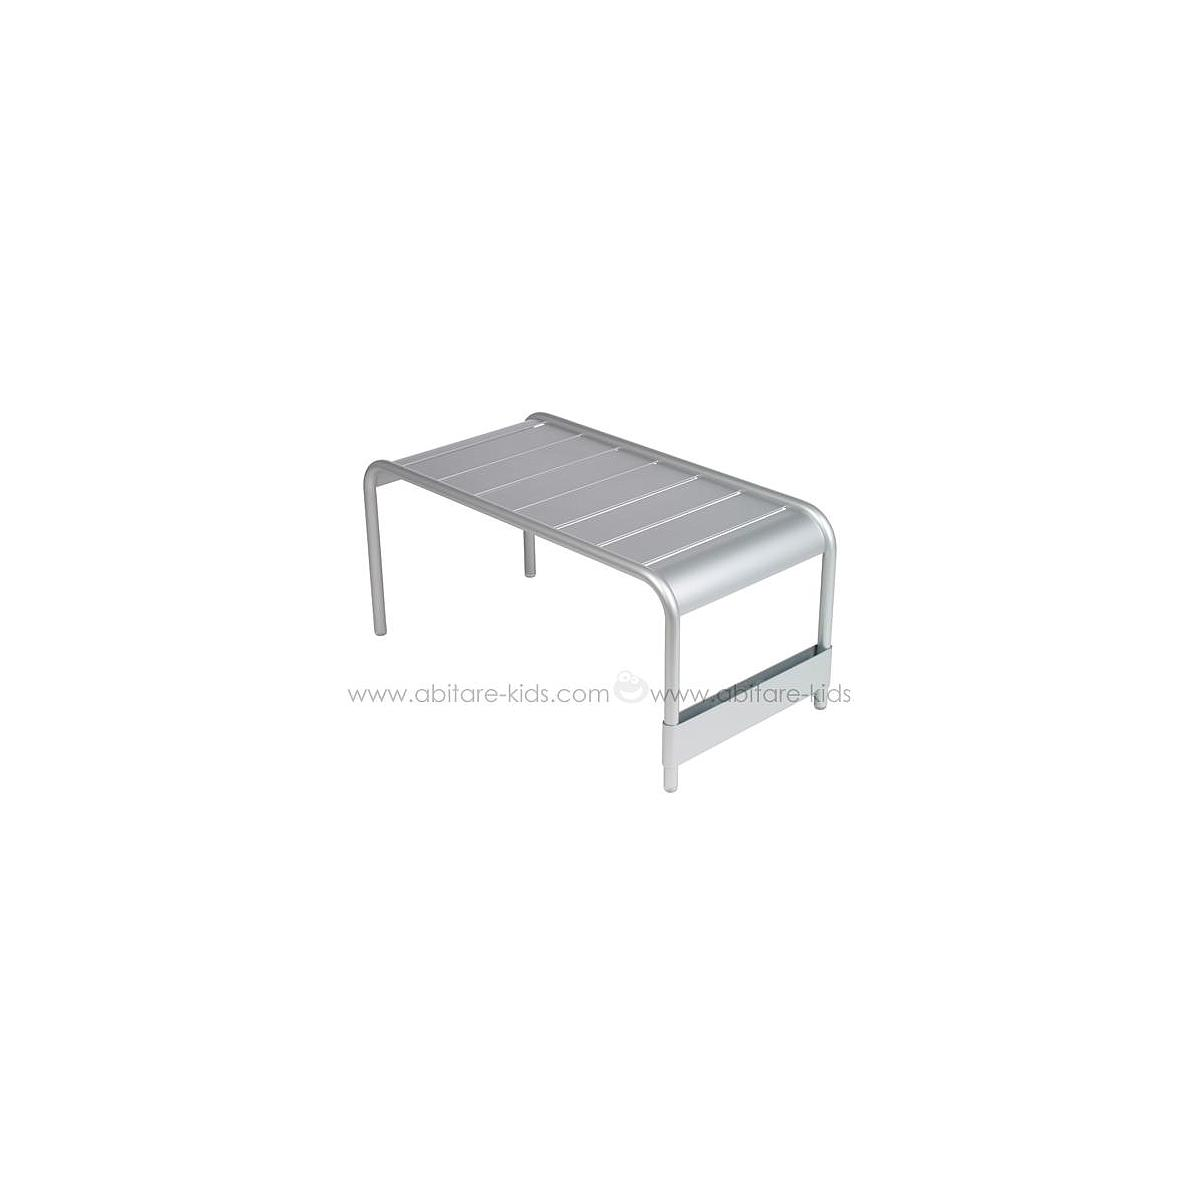 LUXEMBOURG by Fermob Grande table basse gris métal